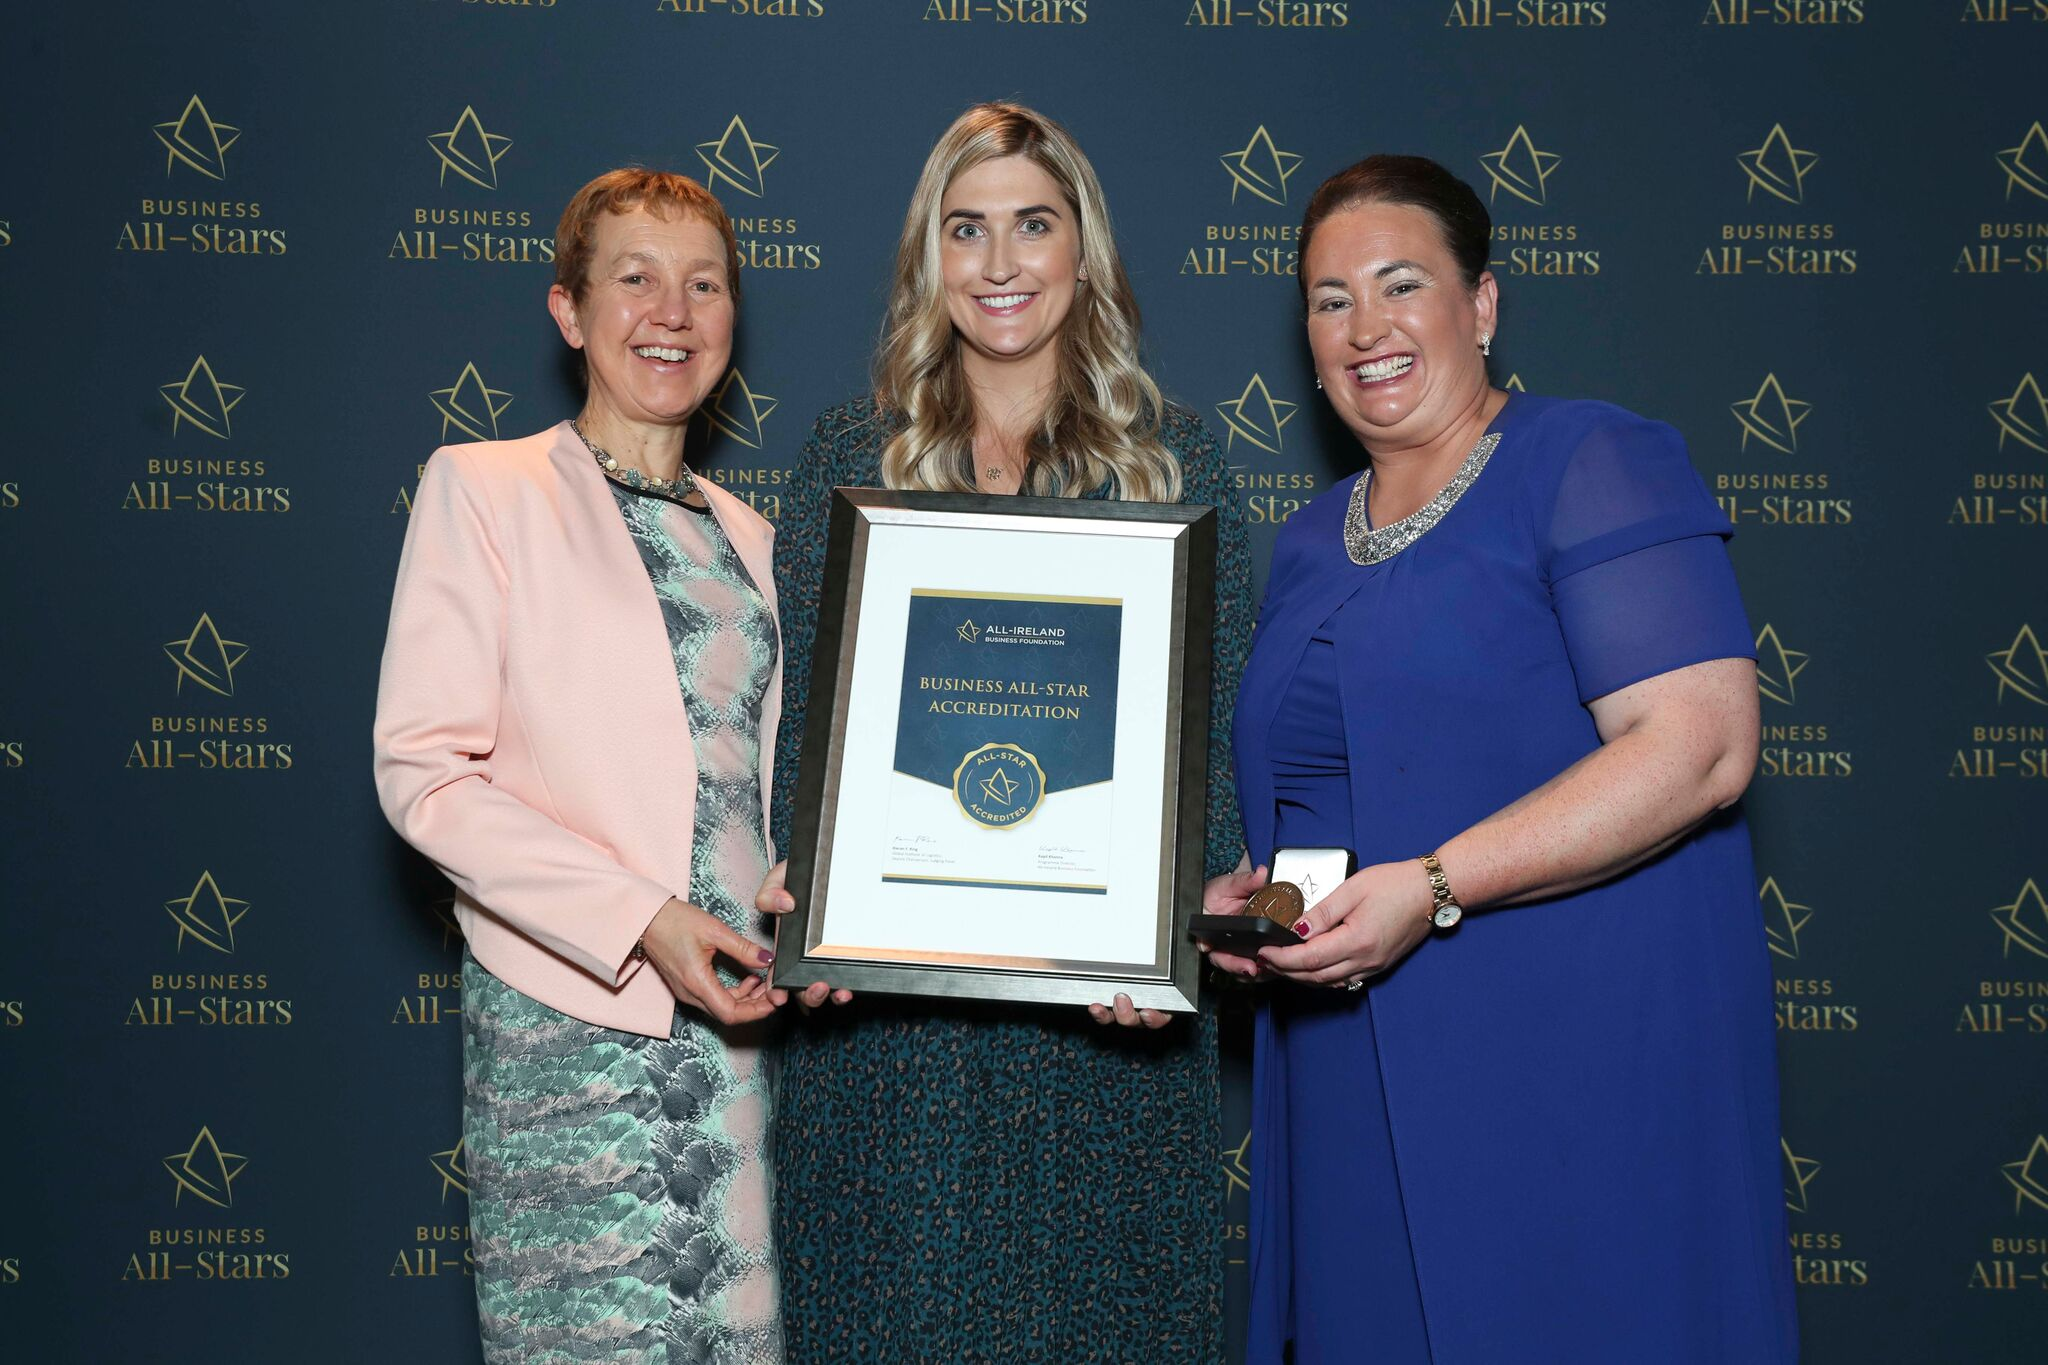 Geraldine - MEDISKIN receiving Business All-Star Accreditation at Croke Park from Dr Briga Hynes, Kemmy Business School, University of Limerick and Elaine Carroll CEO, All-Ireland Business Foundation.